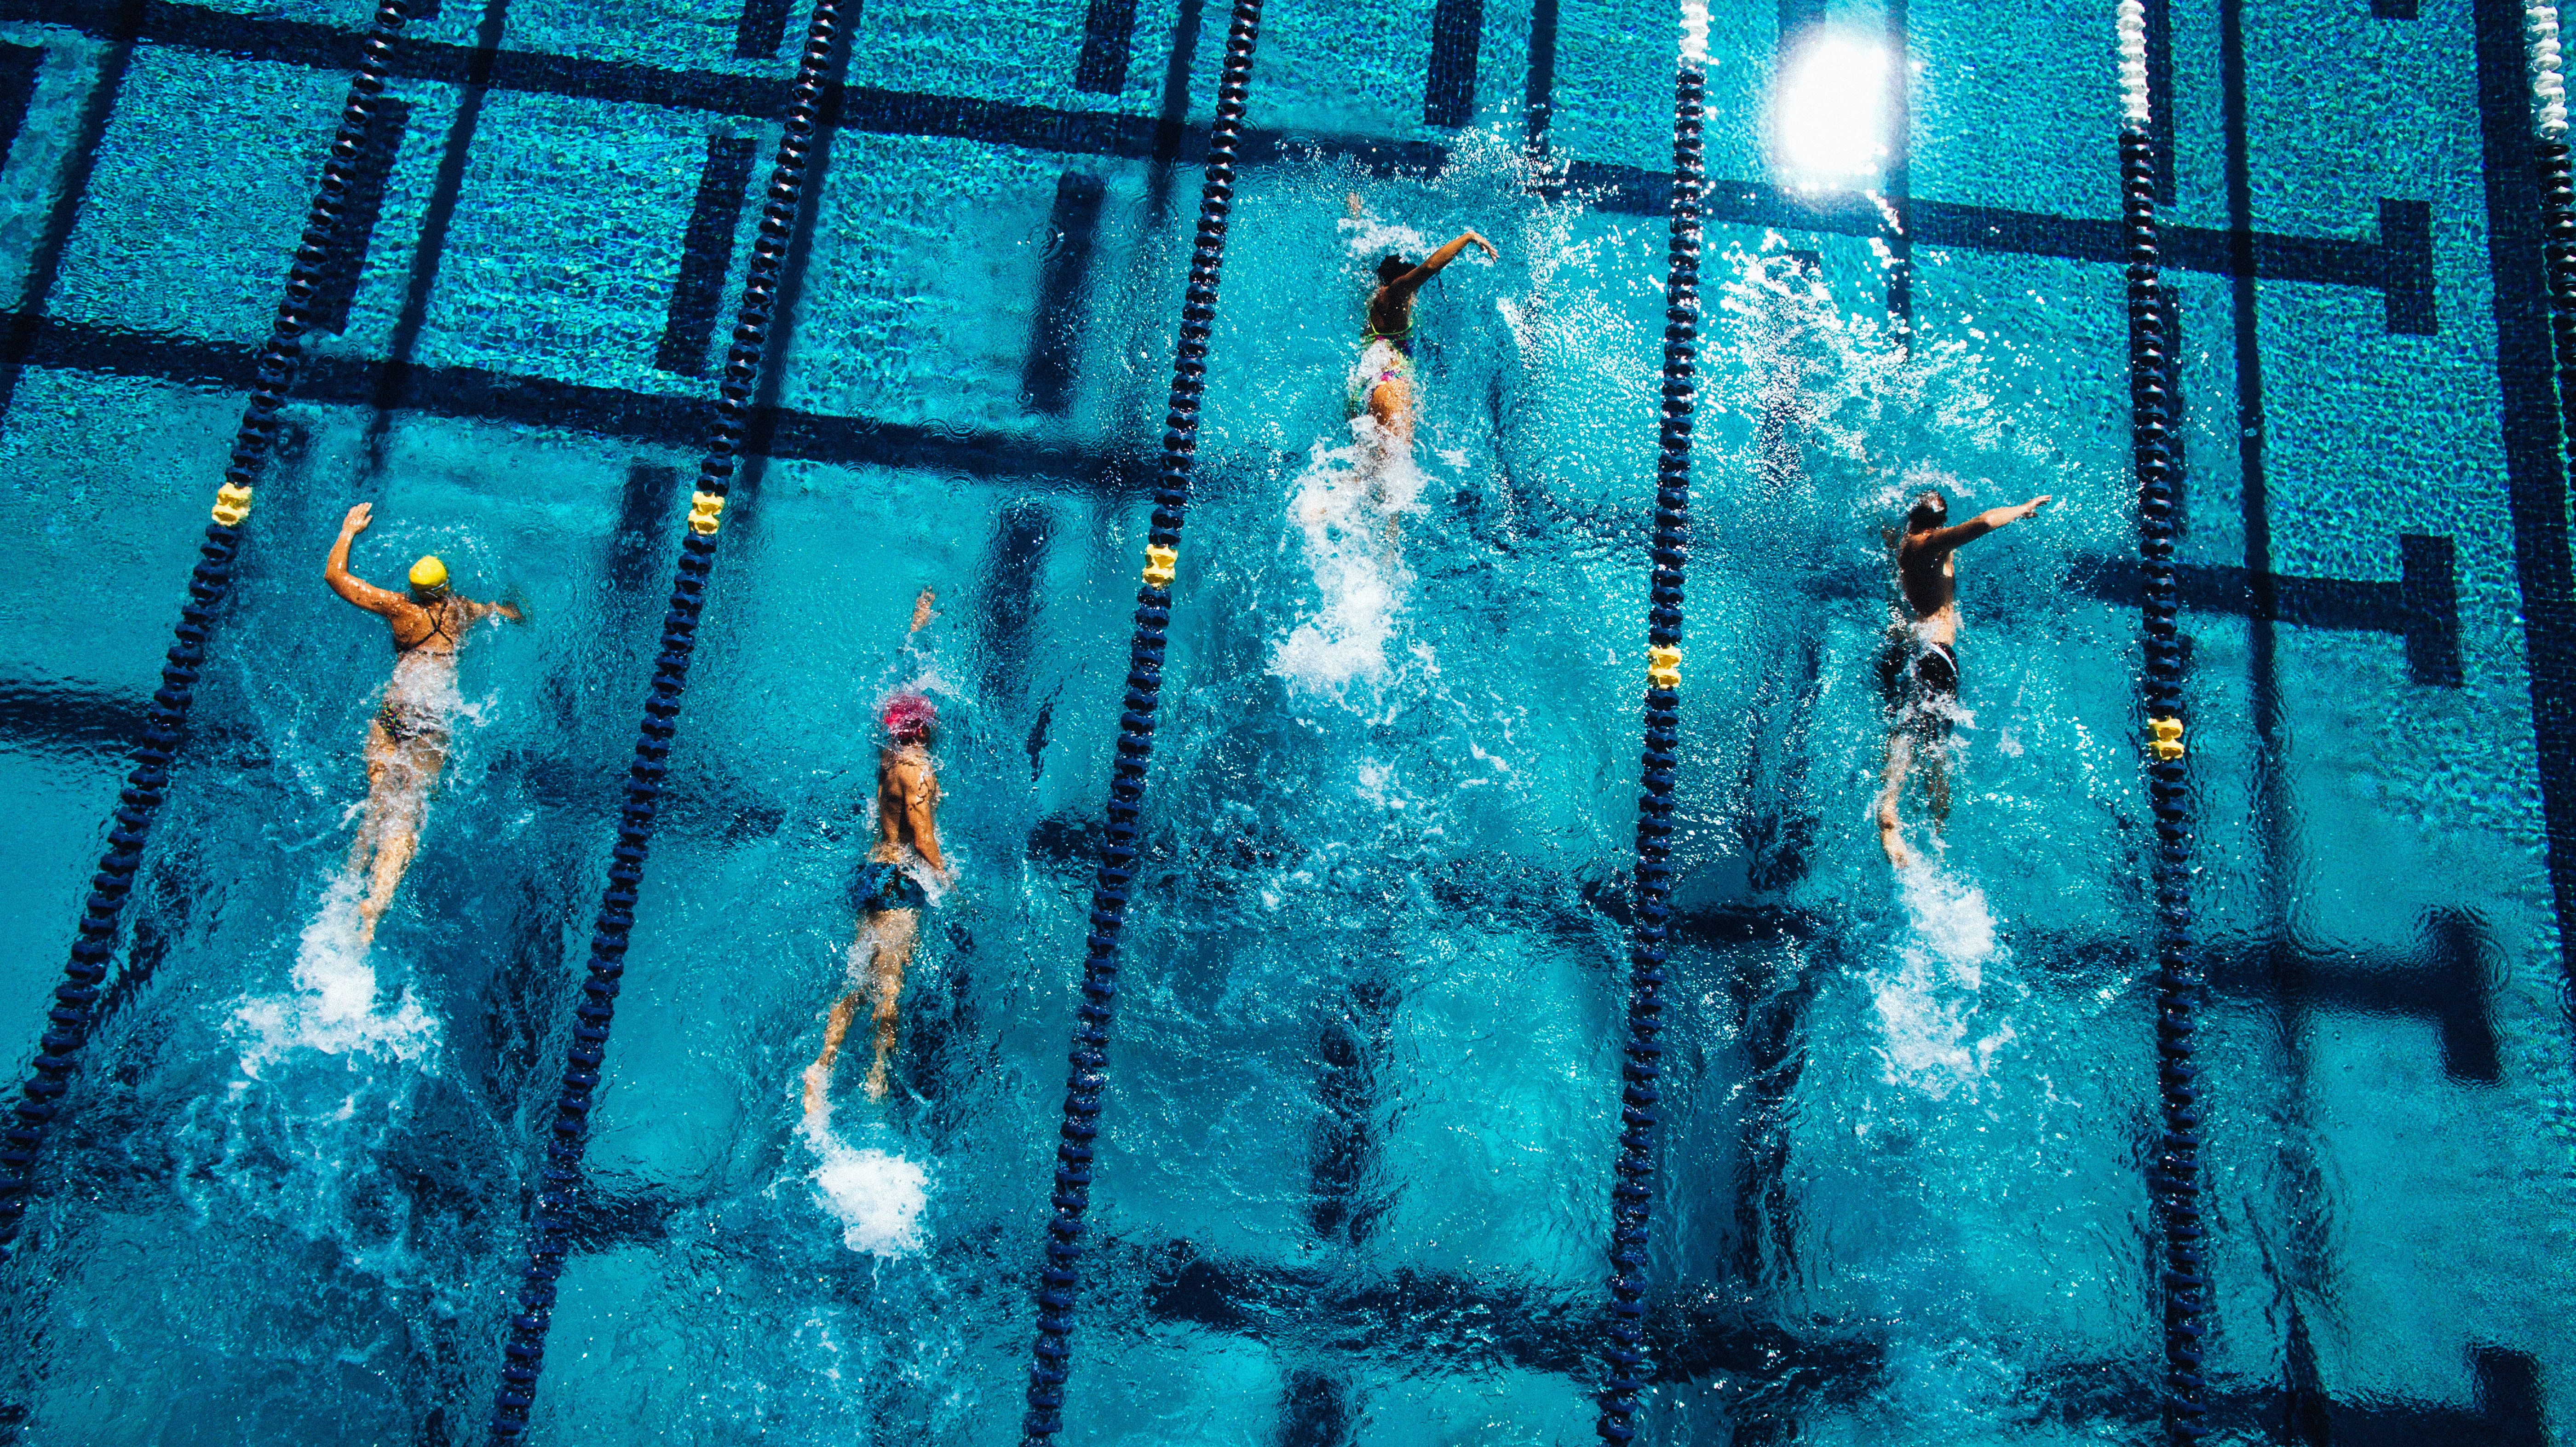 Stock photo of swimmers in pool.